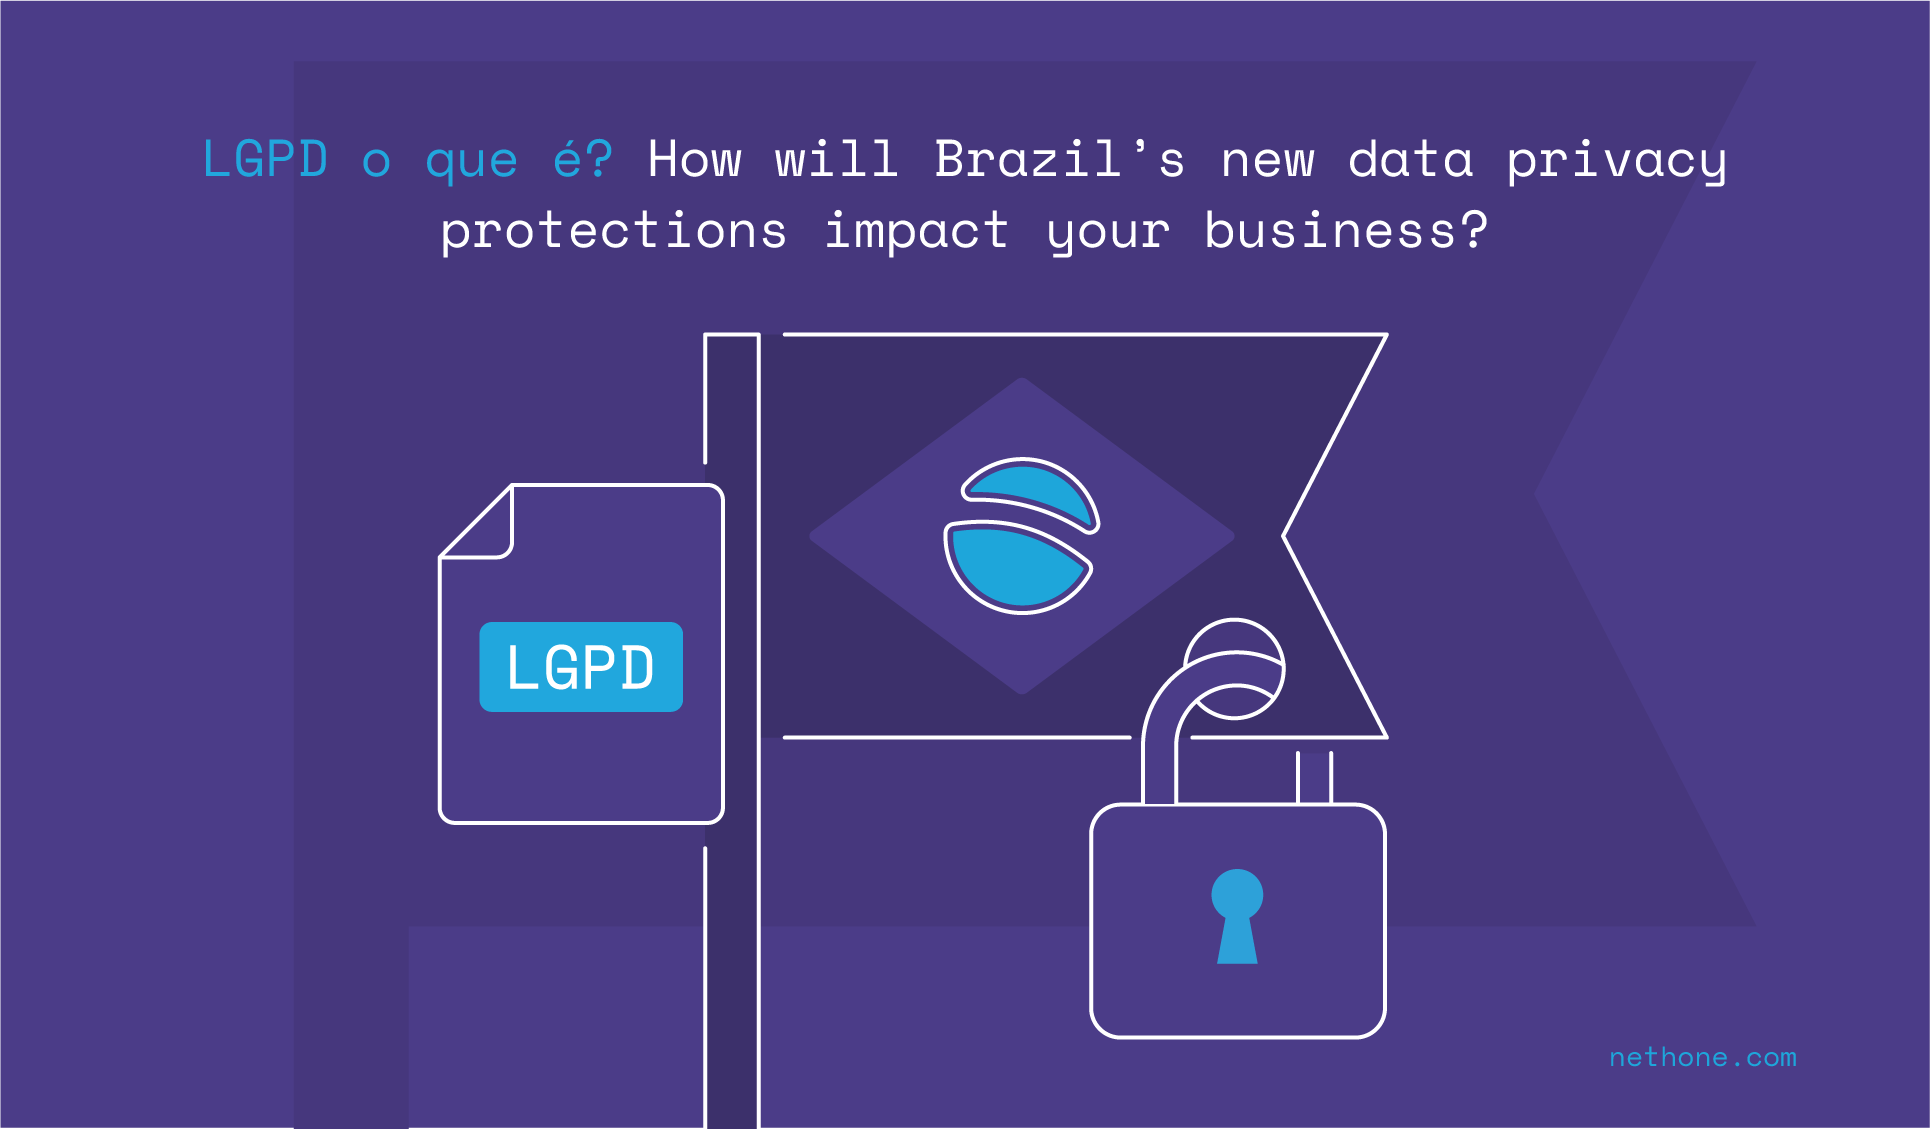 LGPD o que é? How will Brazil's new data privacy protections impact your business? a nethone blog post